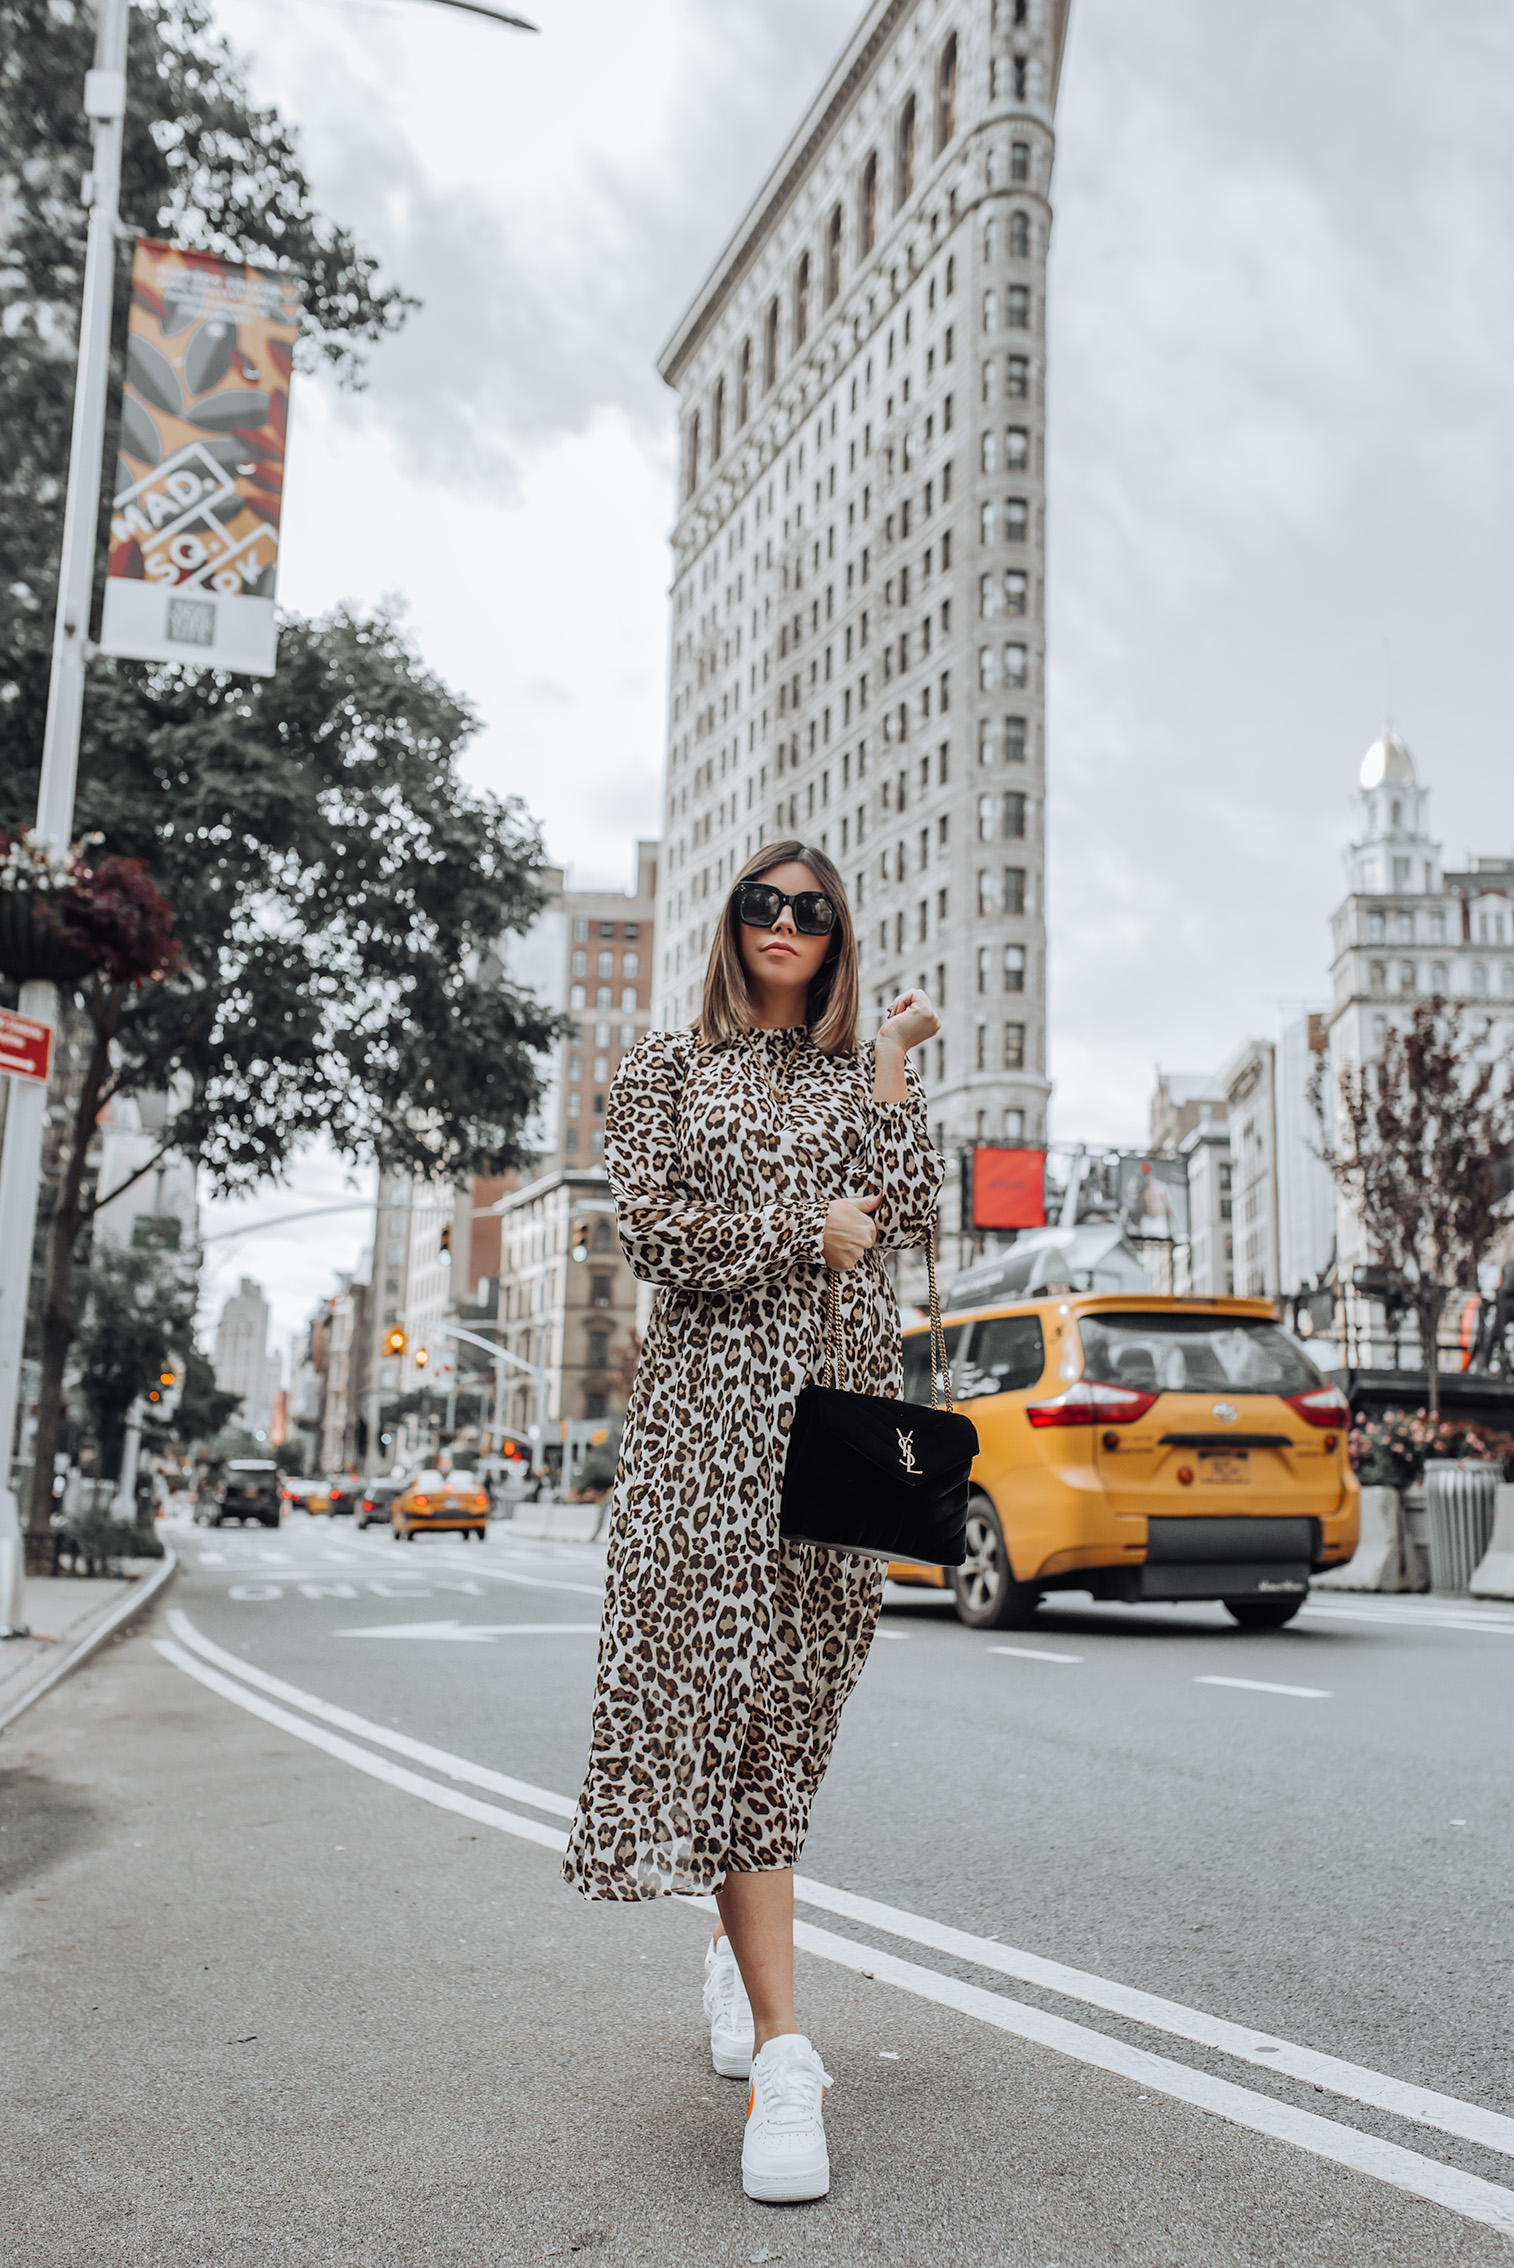 Leo print dress | #leopard #liketkit #nikeoutfits #celine sunglasses #nikeairforce #streetstyle | Leo Print Dress | Nike Air Force | YSL Bag